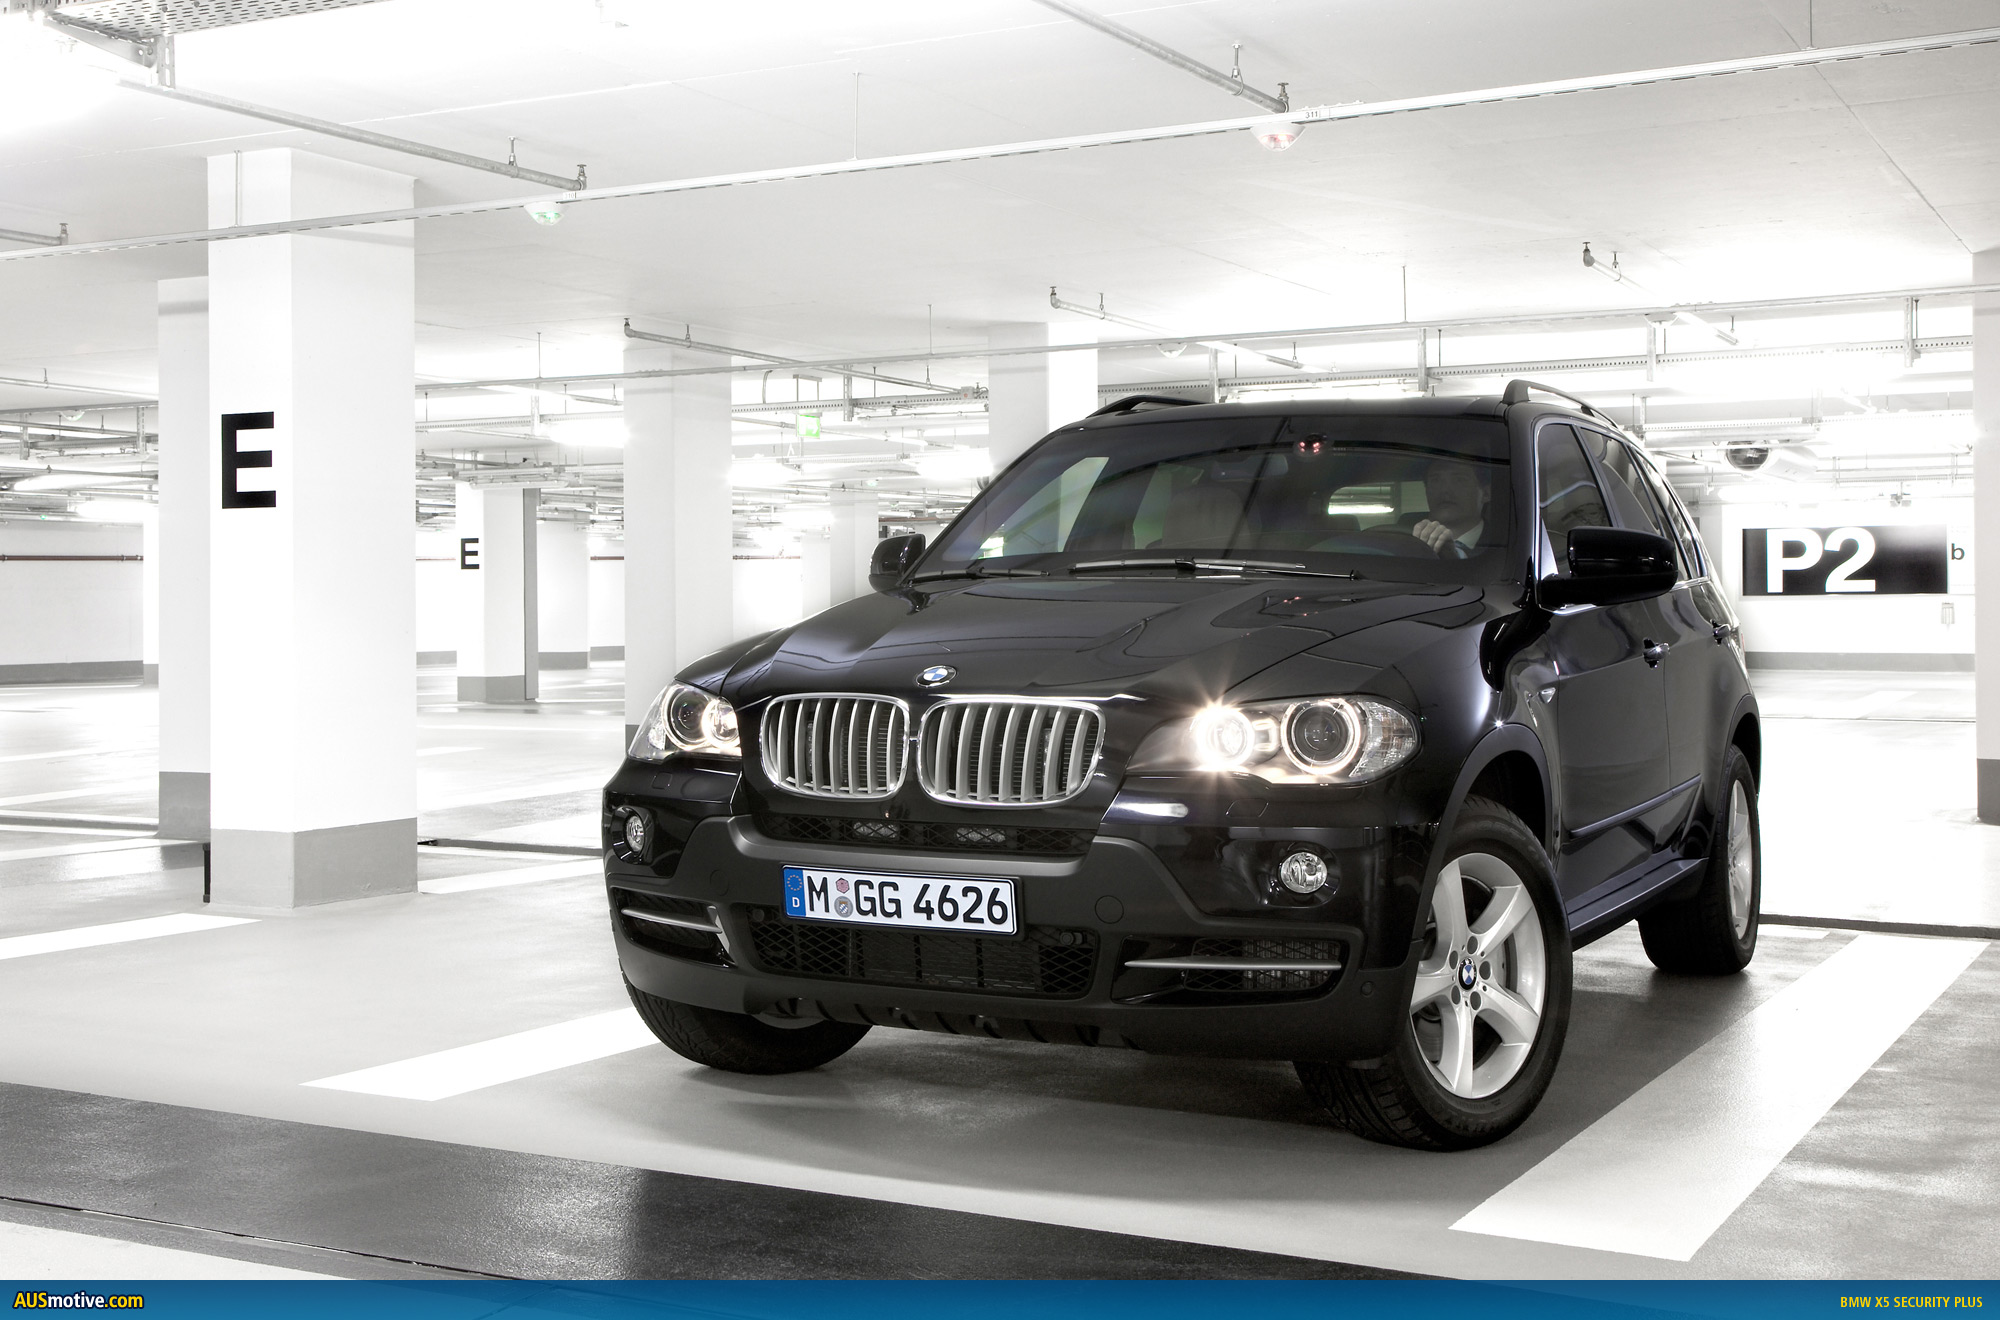 AUSmotive.com » BMW X5 Security Plus